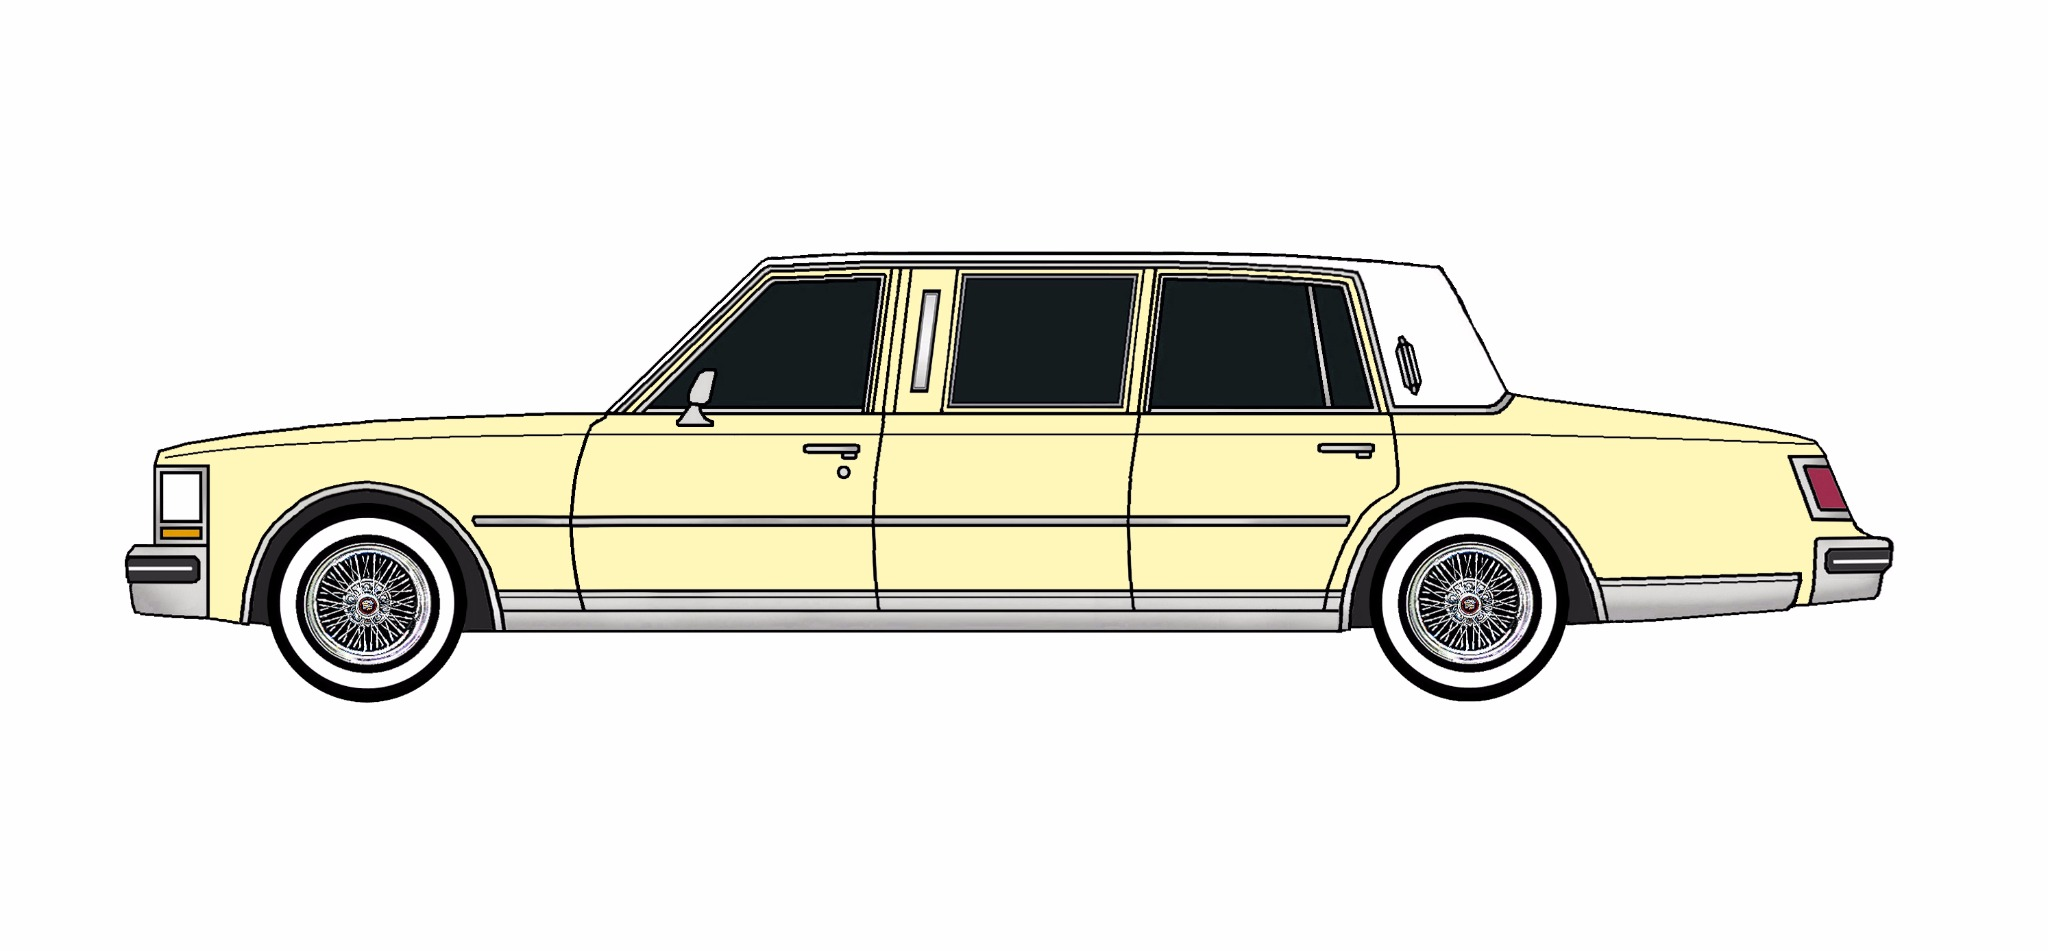 1978 Cadillac Seville Limo LEMON YELLOW